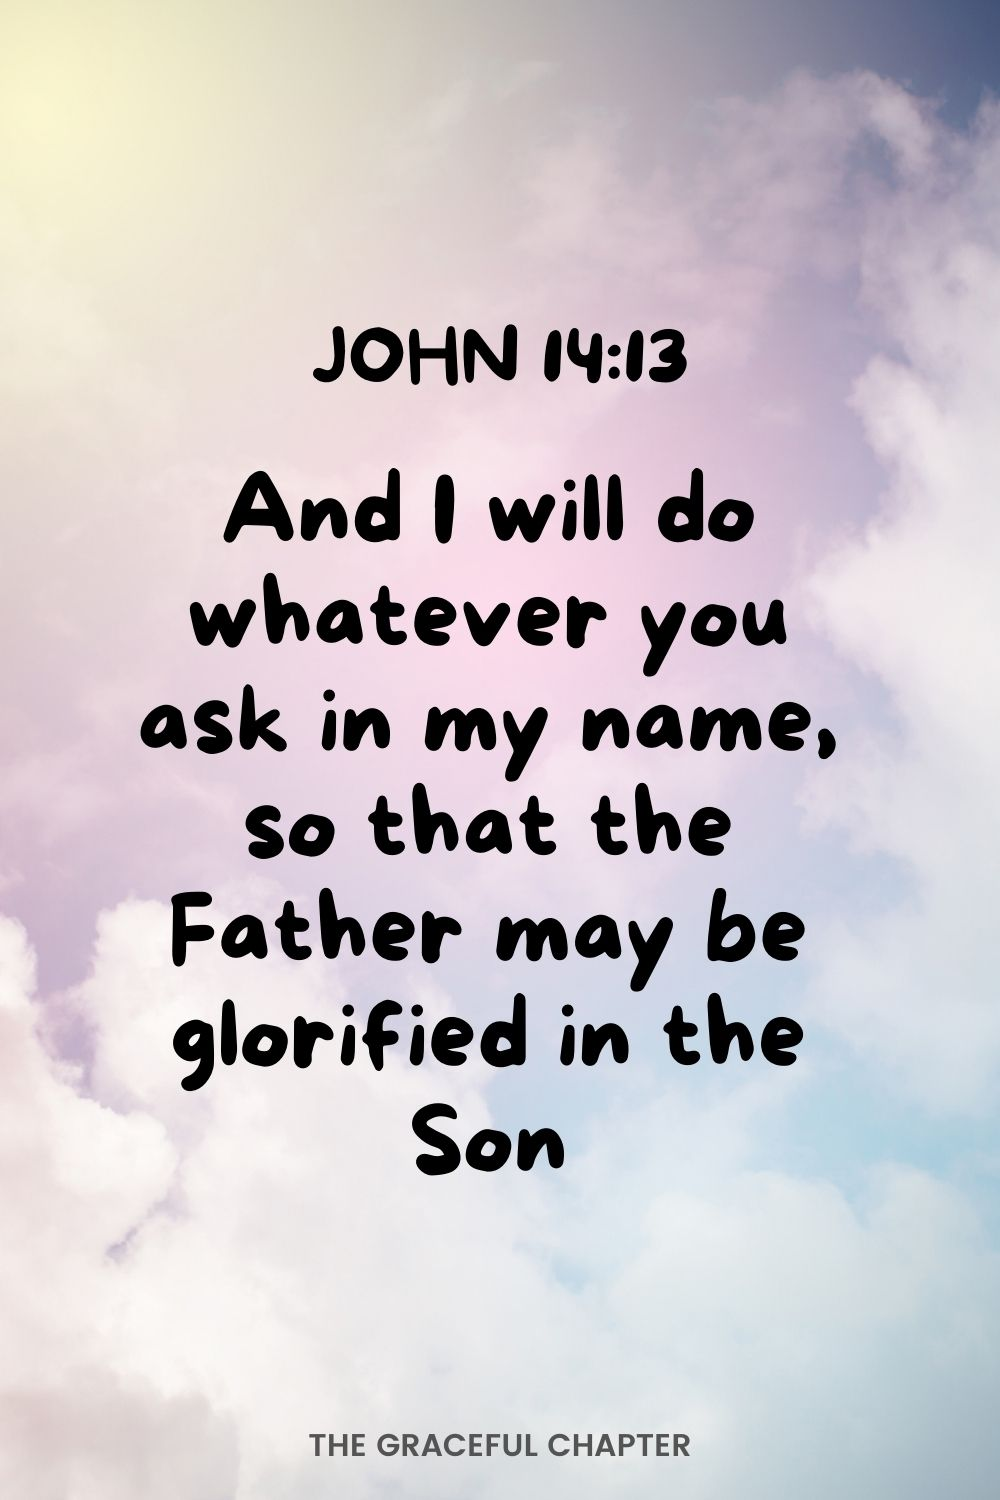 And I will do whatever you ask in my name, so that the Father may be glorified in the Son.  John 14:13